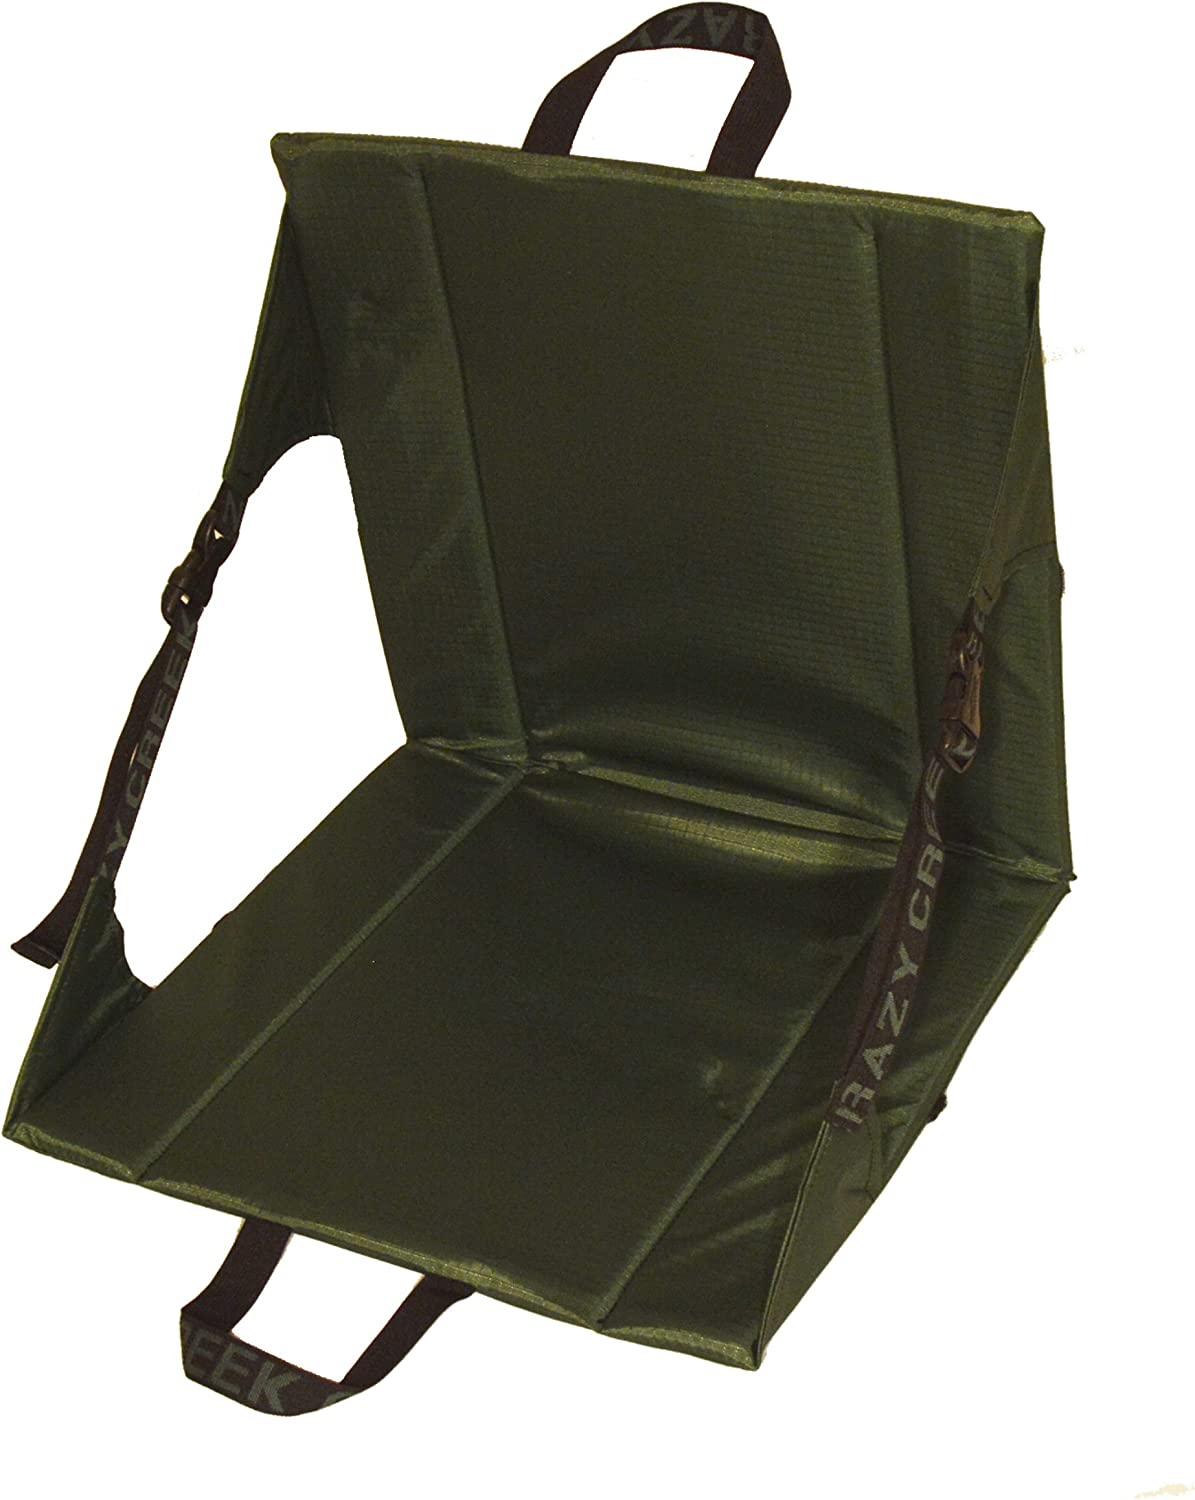 Crazy Creek Original Chair – The Original Lightweight Padded Folding Chair – Forest Green